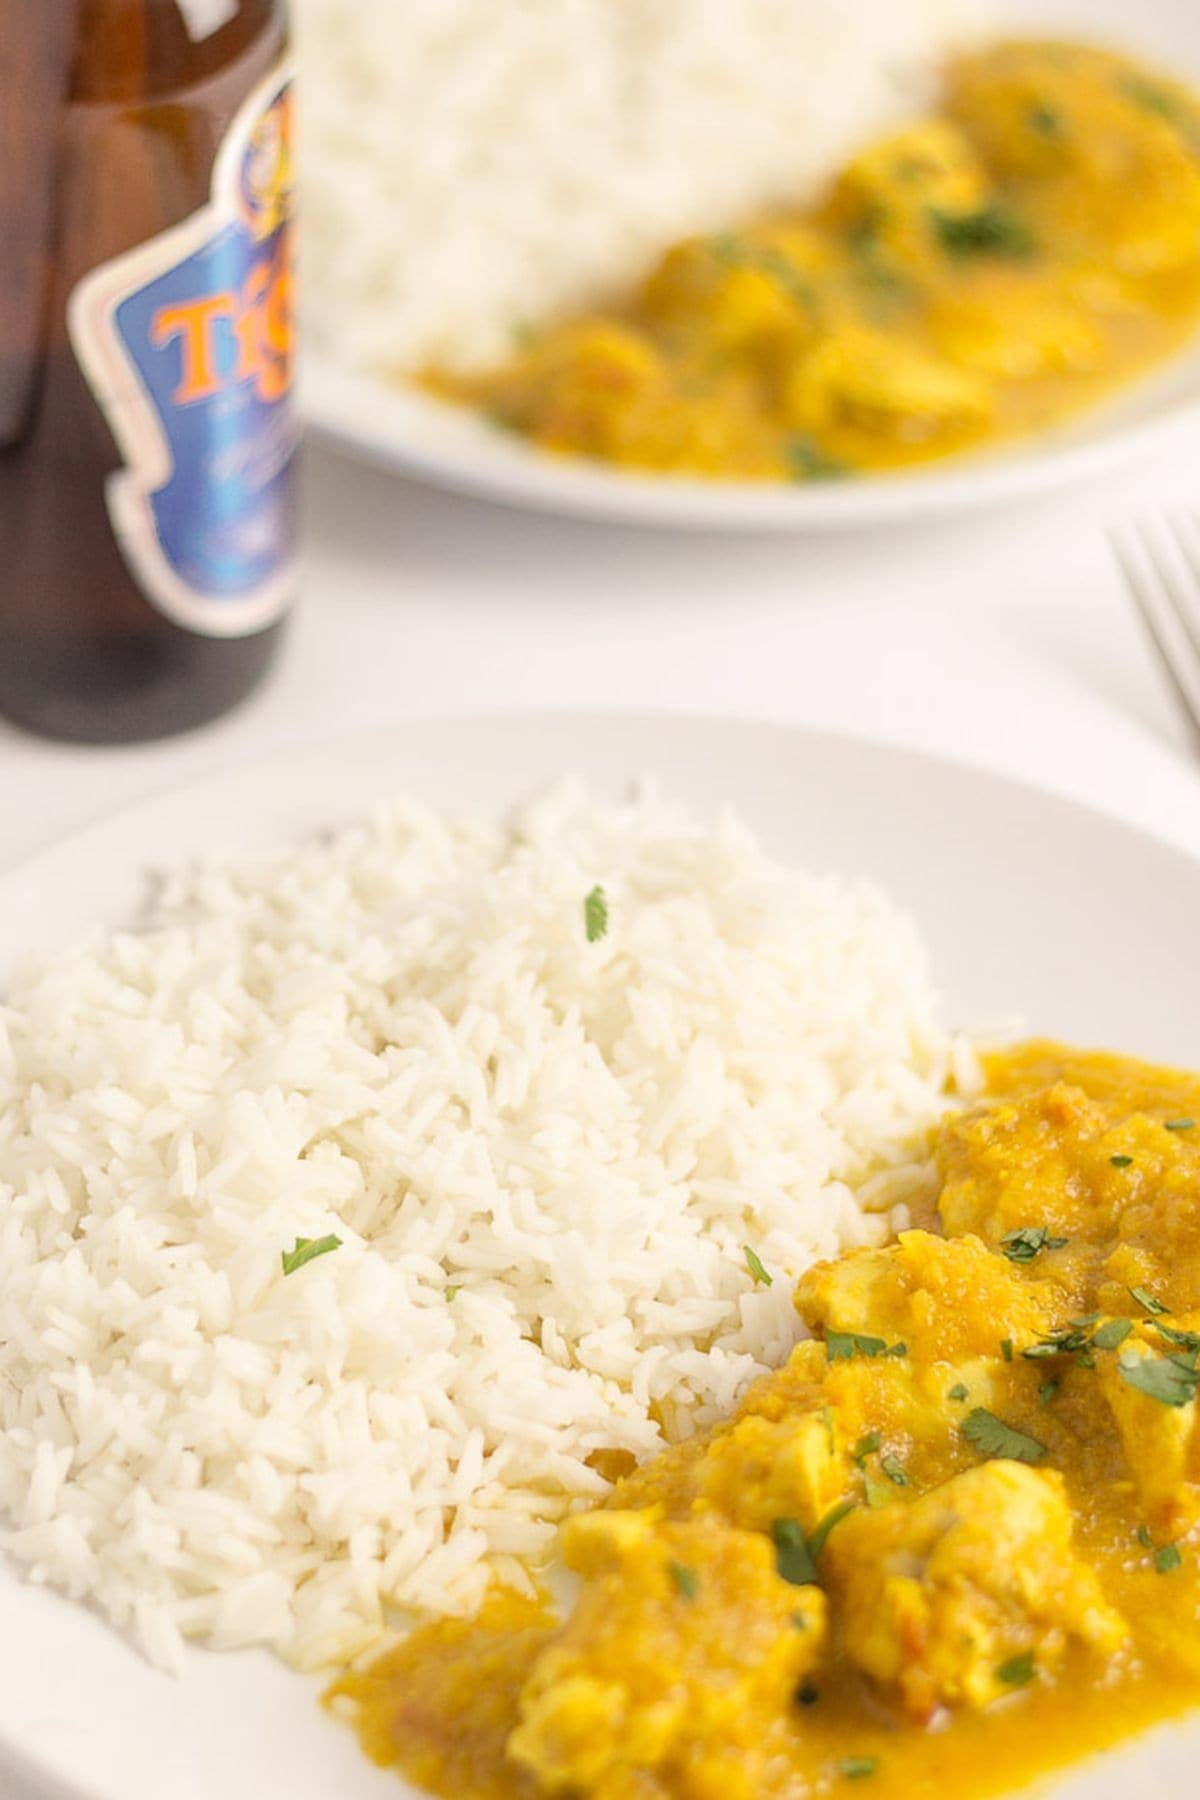 Two plates of chicken curry with rice on and a bottle of beer in between.